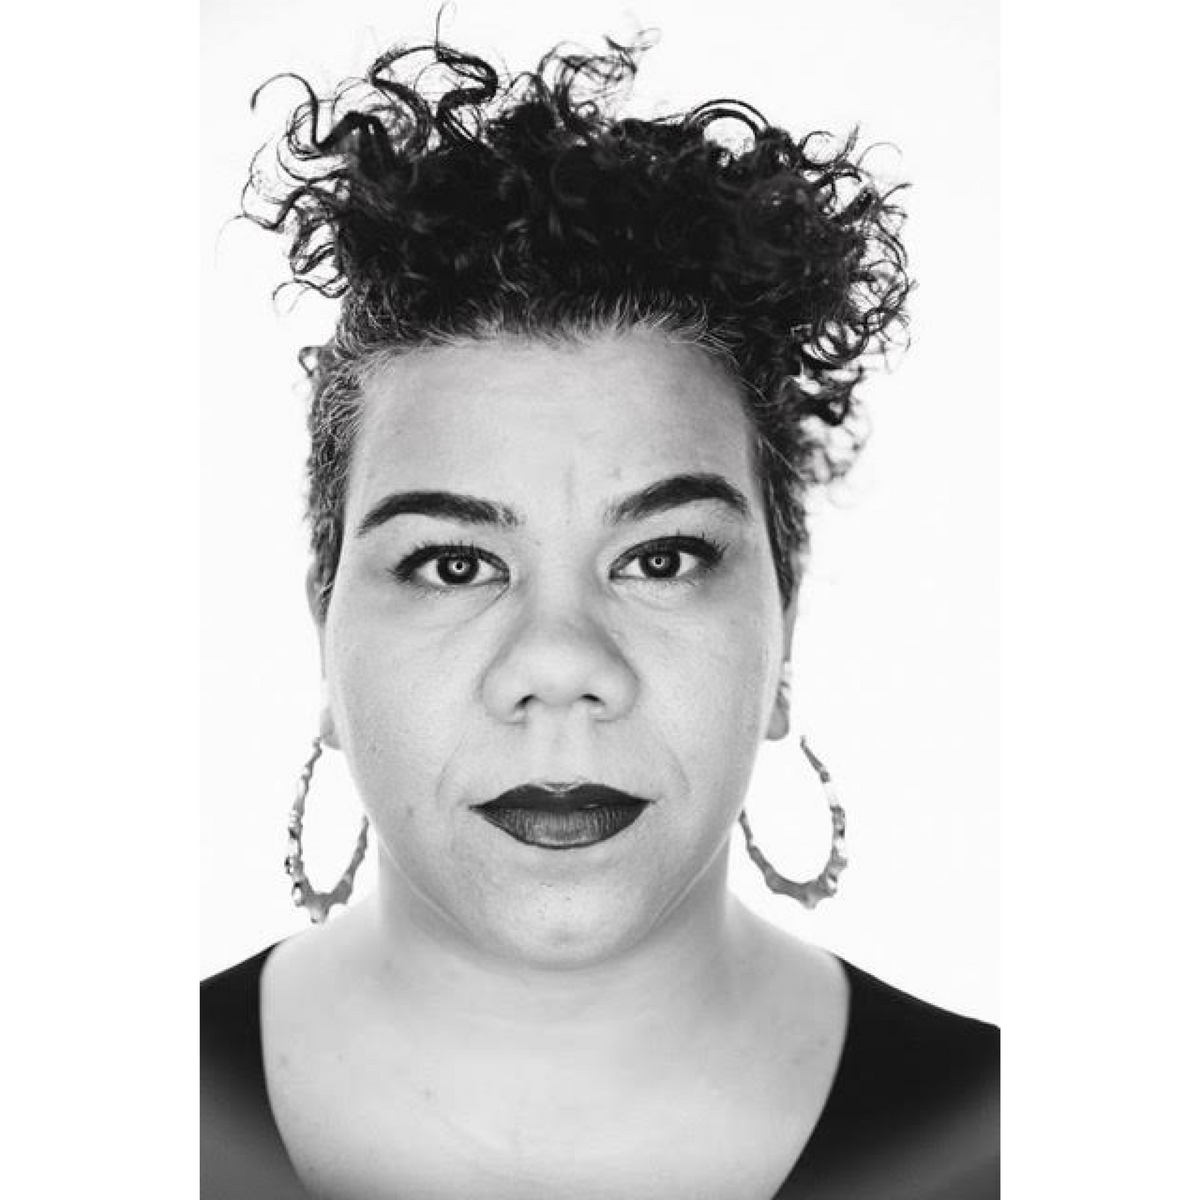 Black and white image of a woman with short dark curly hair stares into the camera. She wears large hoop earrings